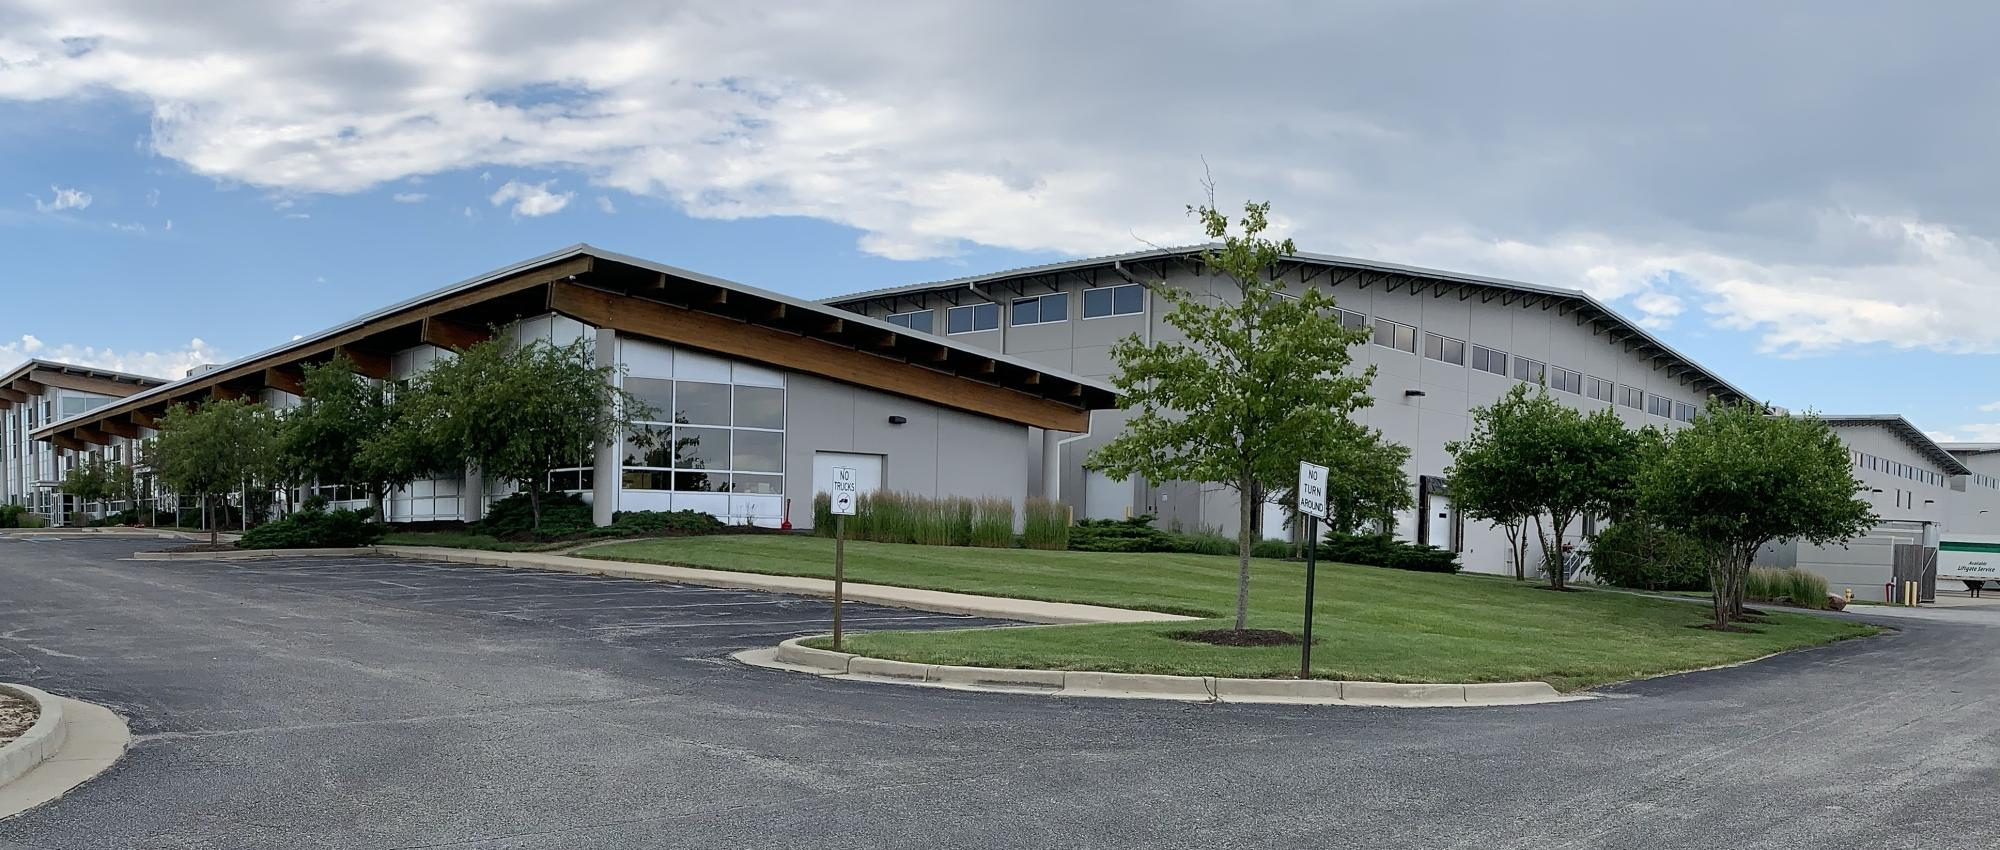 Festool plant in Lebanon, Indiana